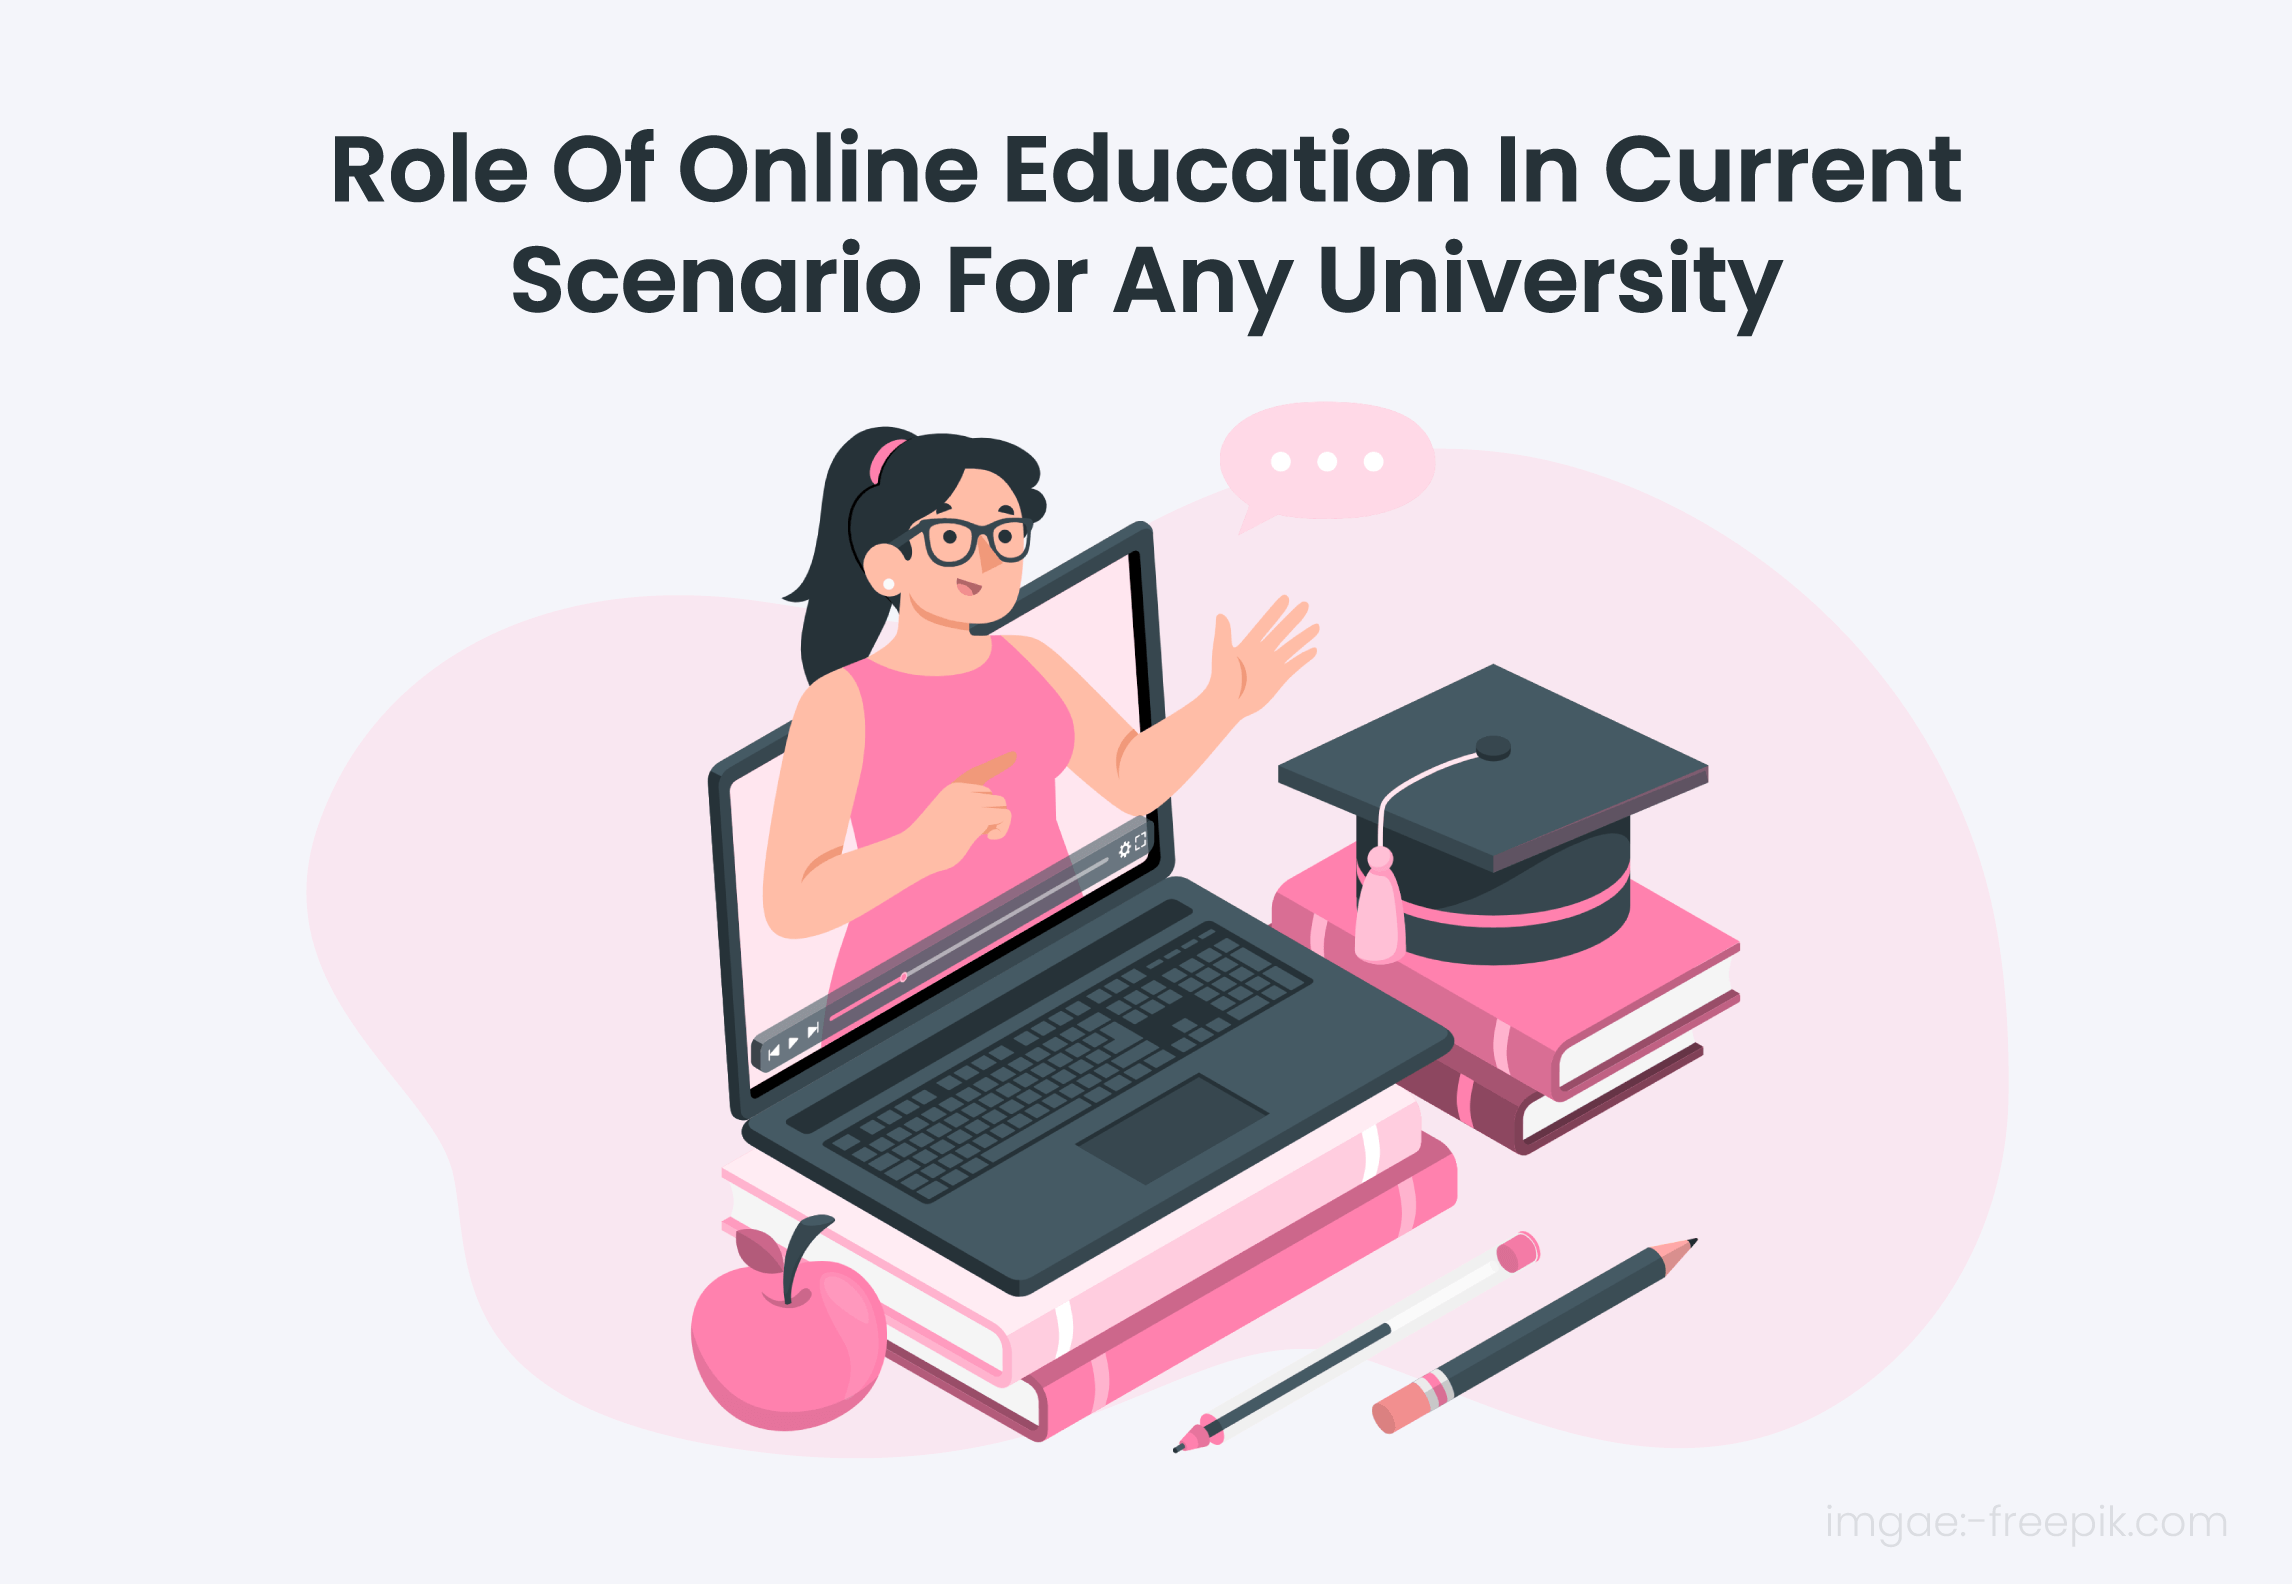 Role Of Online Education In The Current Scenario For Any University